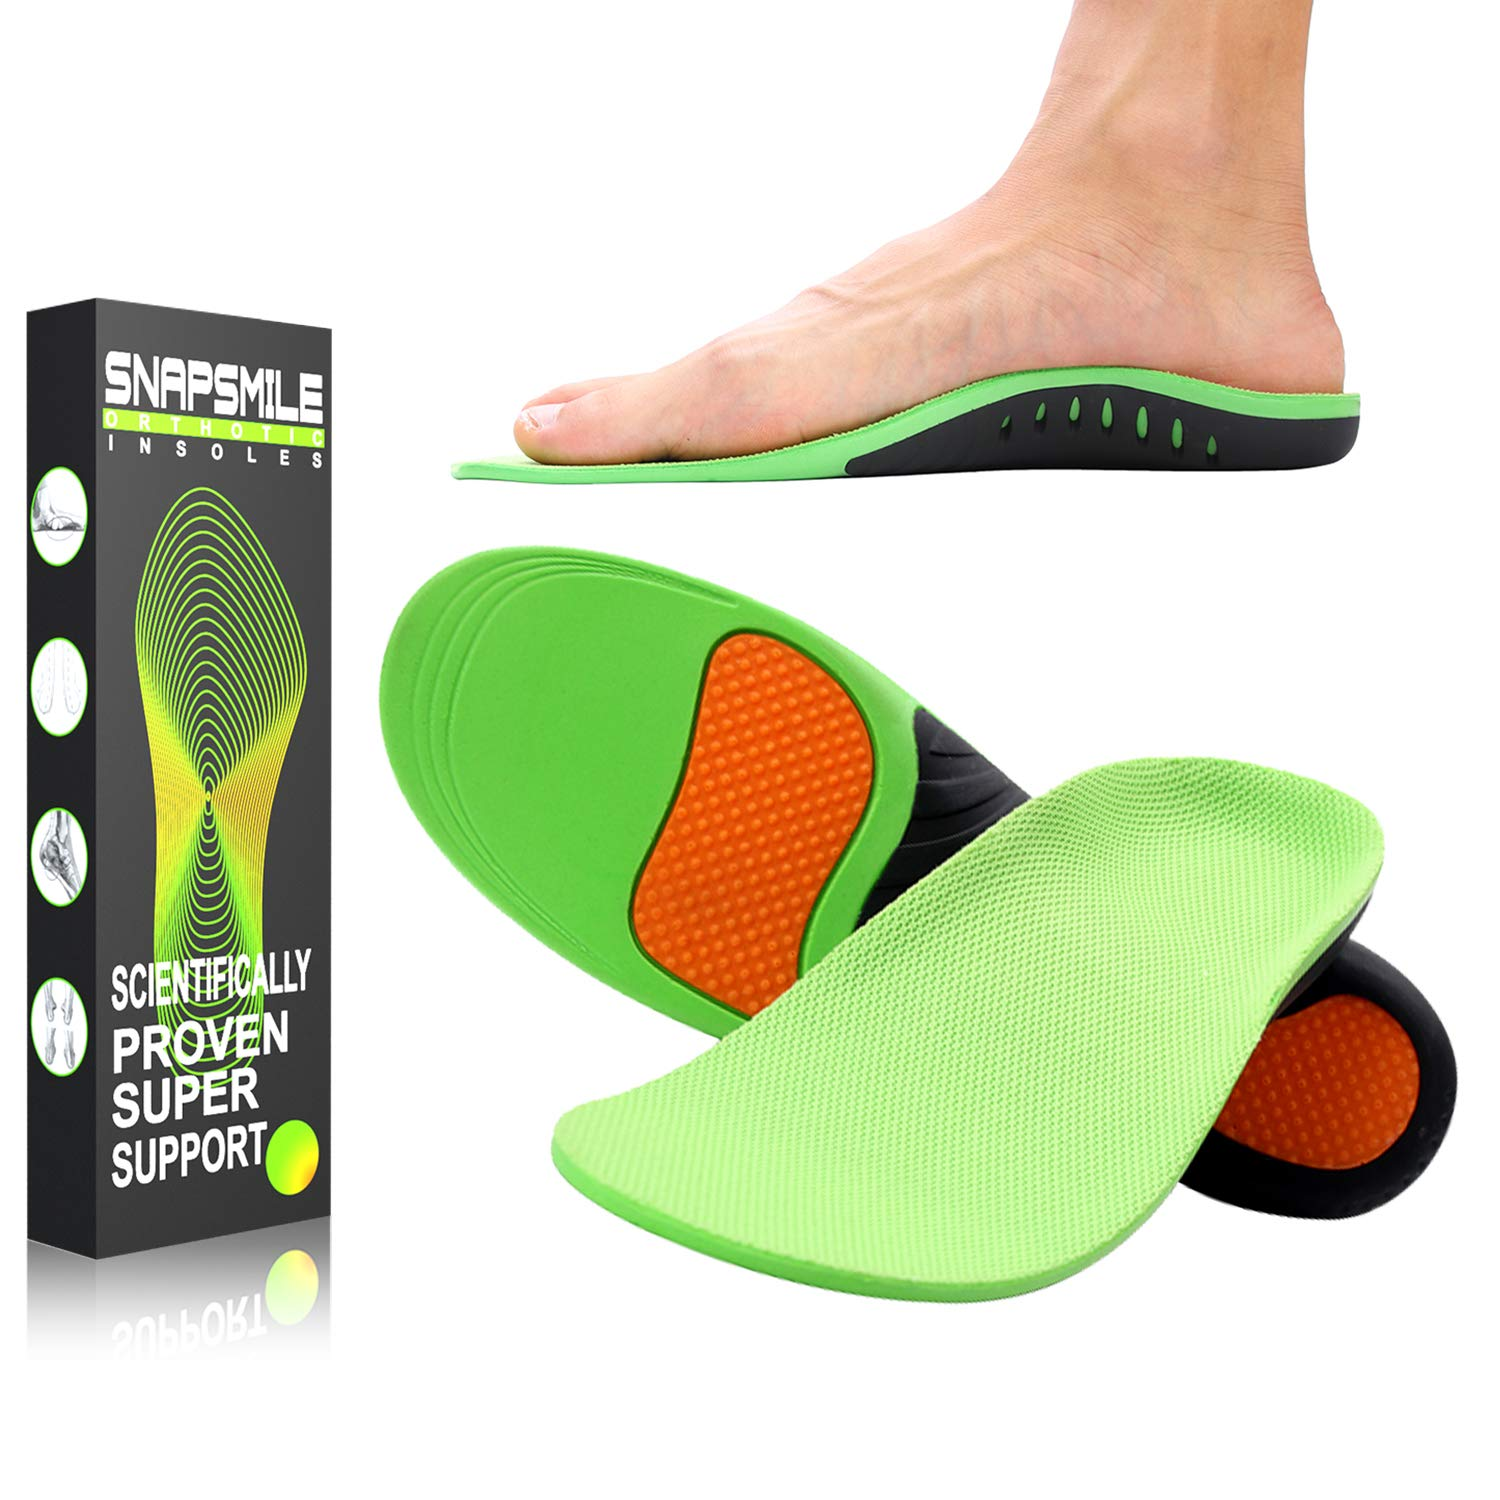 Snapsmile Medical Grade Plantar Fasciitis Inserts - Arch Support Shoe Inserts Women Man Doctor Recommends Professional Orthotic Inserts for Plantar Fasciitis High Arch Support Gel Flat Feel Insoles, S